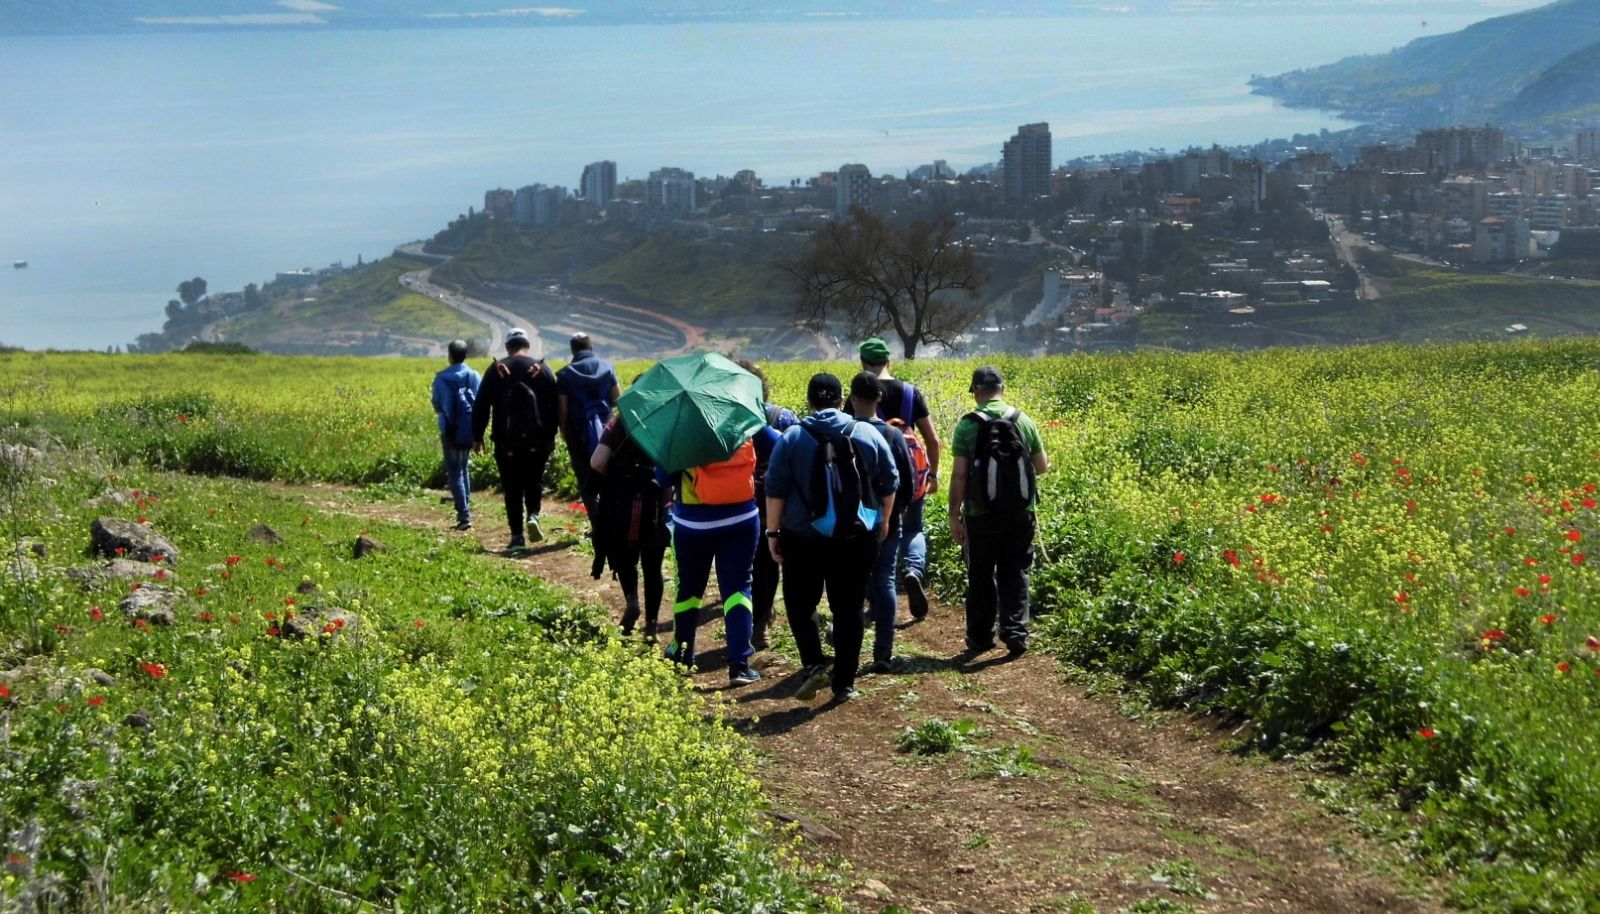 Sanhedrin Trail to be Israel's first interactive hiking path - ISRAEL21c